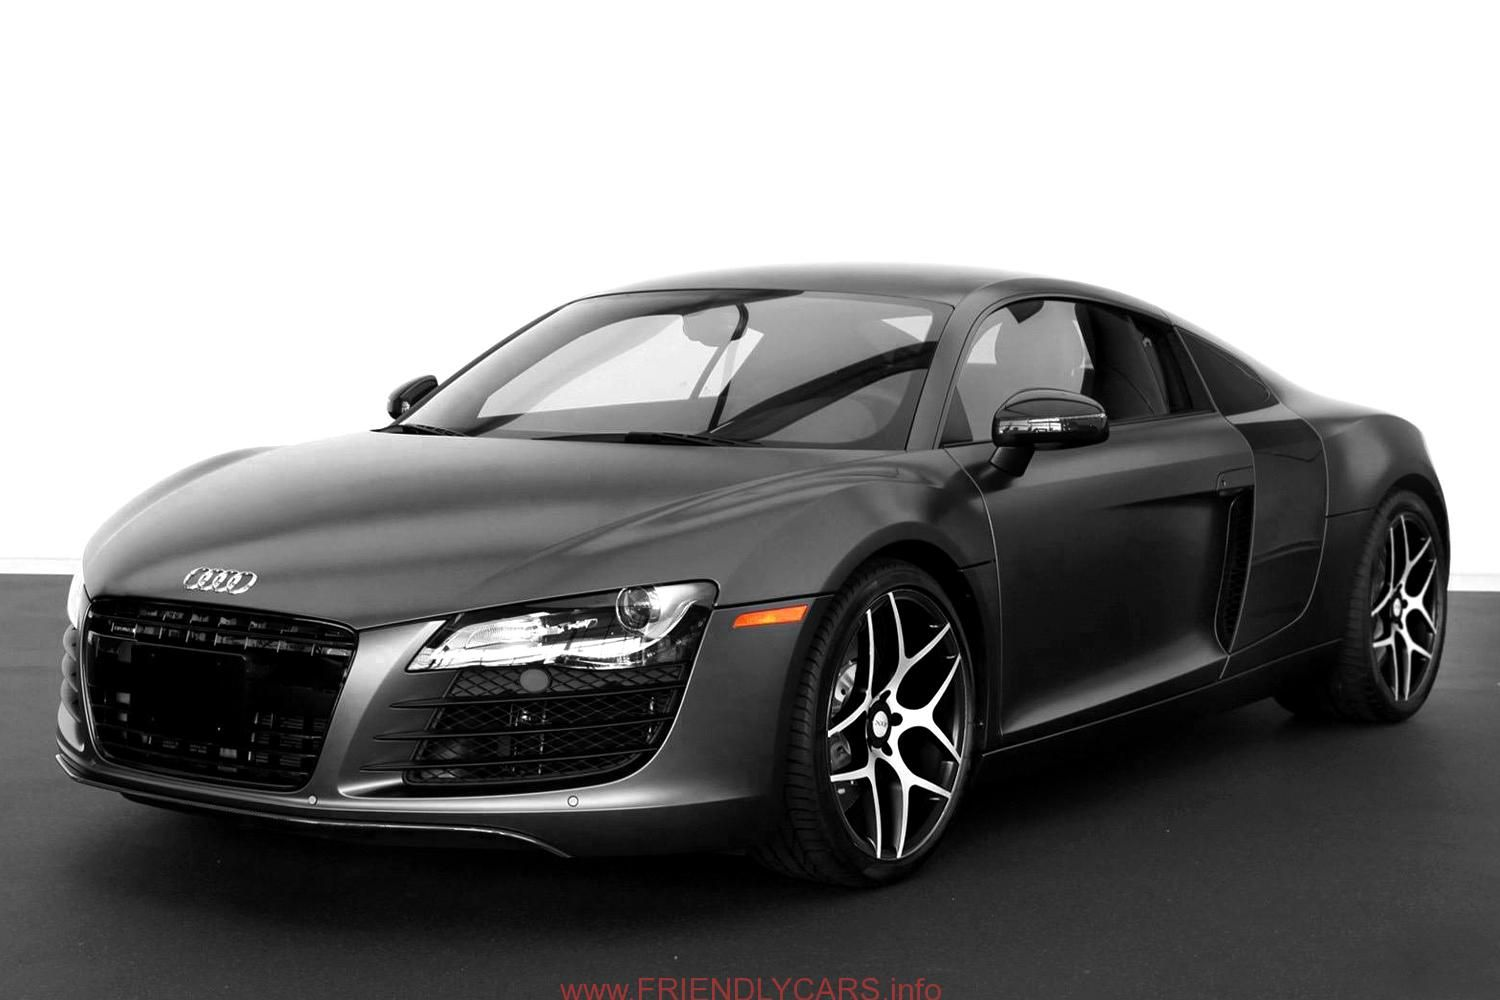 cool audi r8 matte red car images hd 2014 audi rs8 black wallpaper best car wallpaper rolls. Black Bedroom Furniture Sets. Home Design Ideas